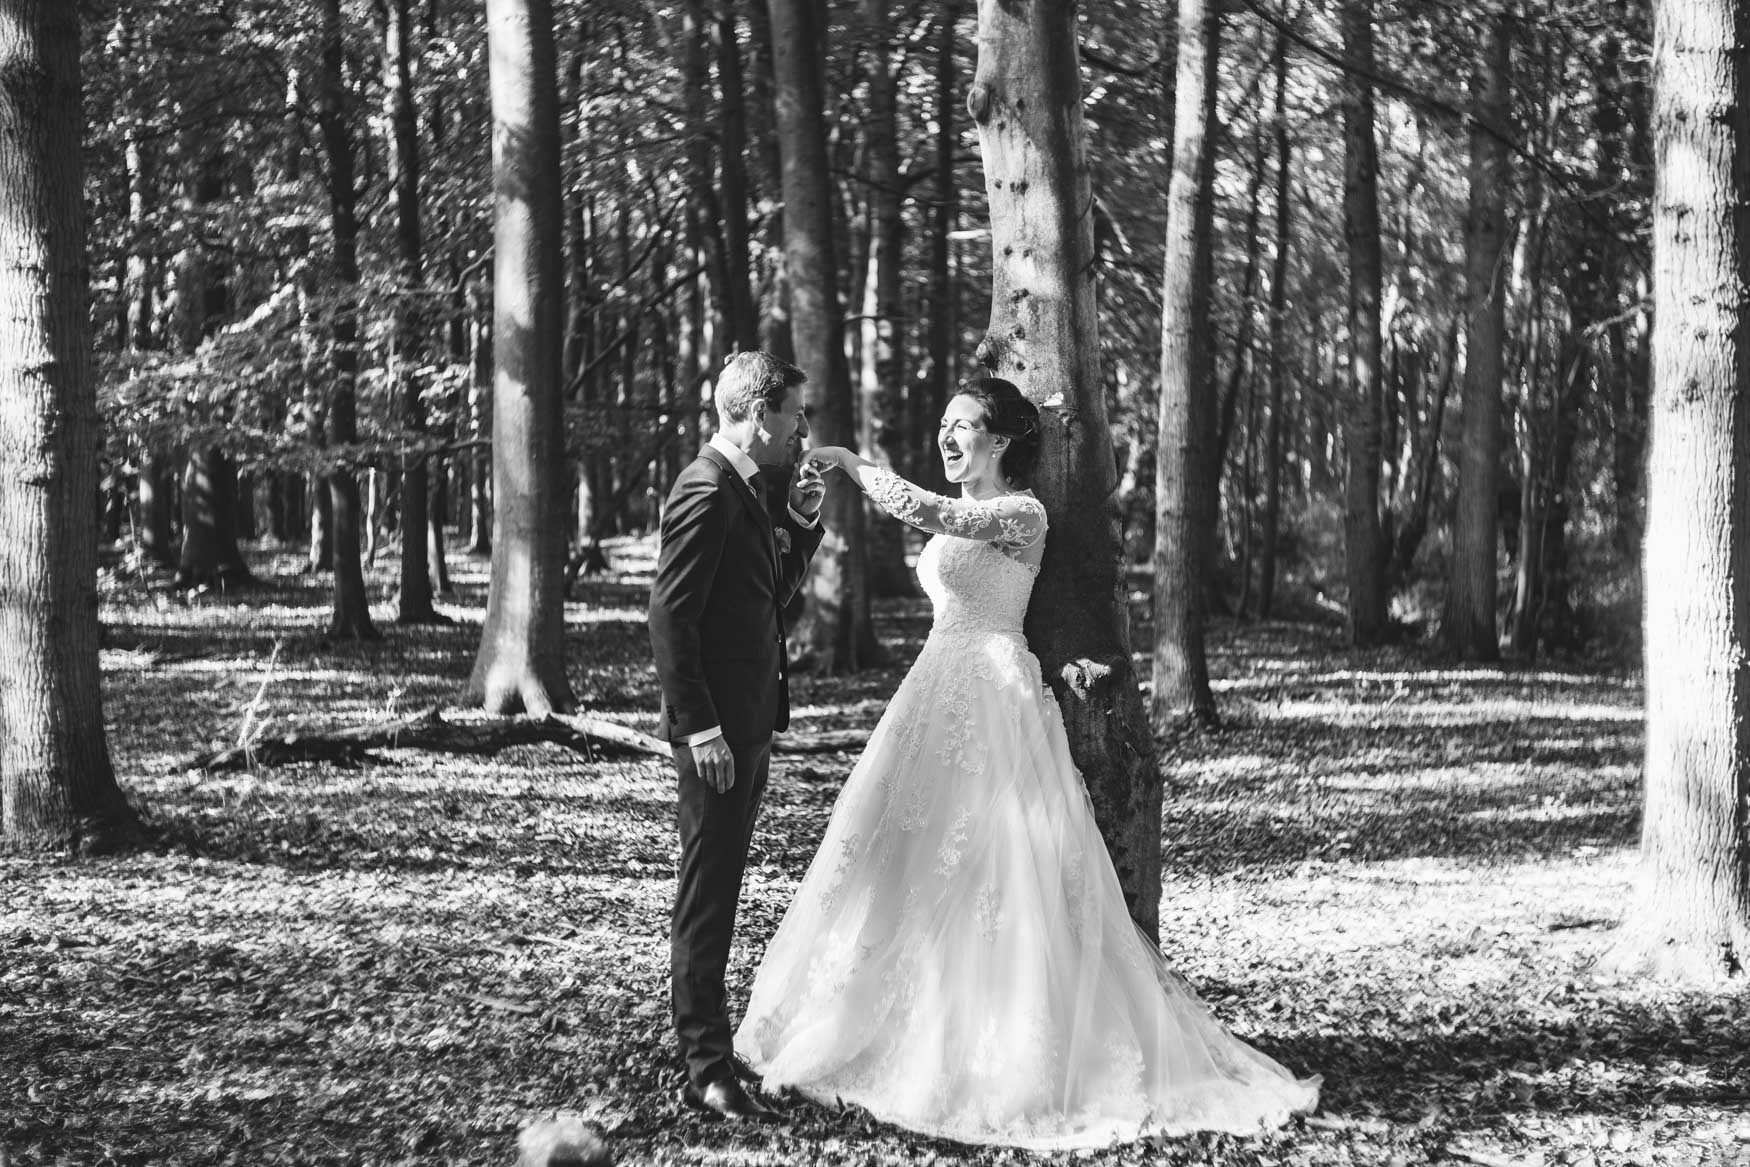 bw wedding forest Castricum